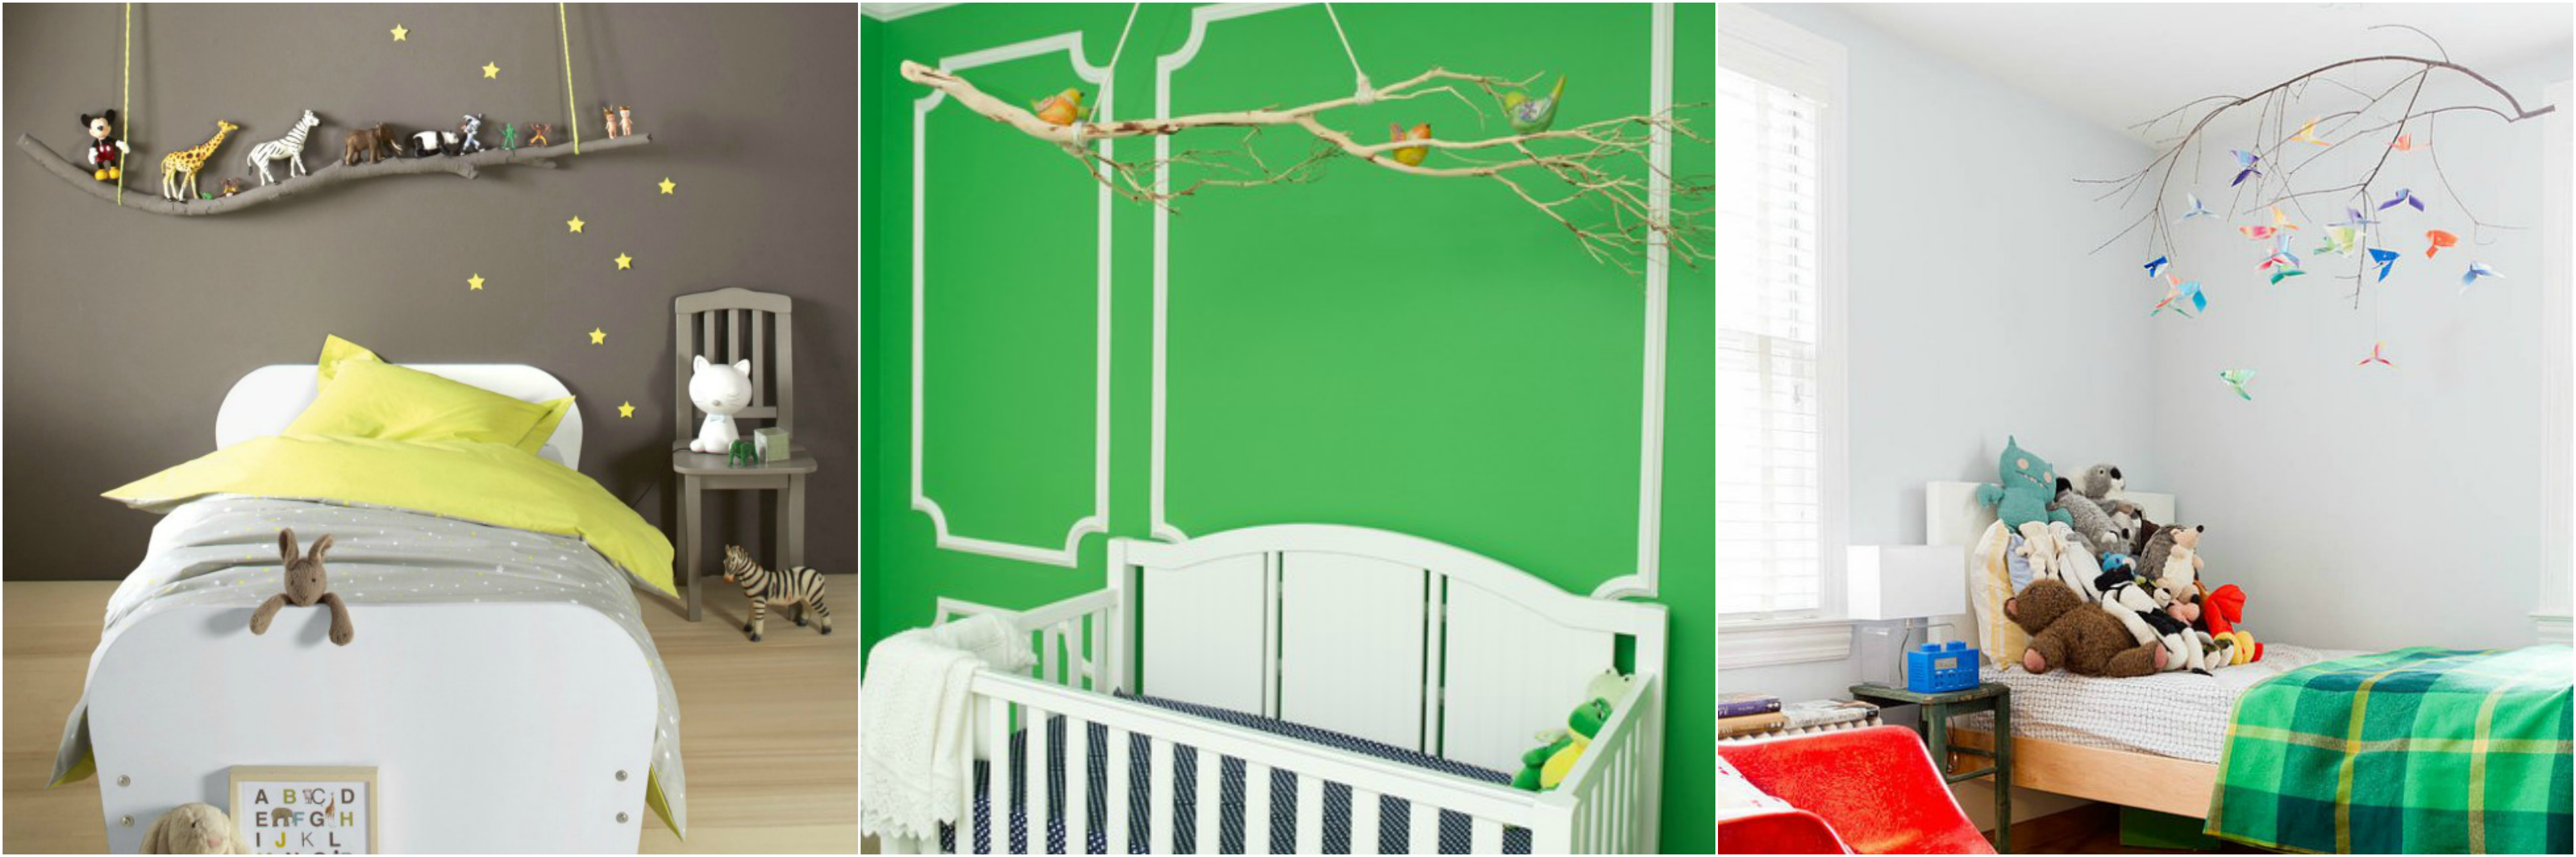 ideas DIY decoracion niños